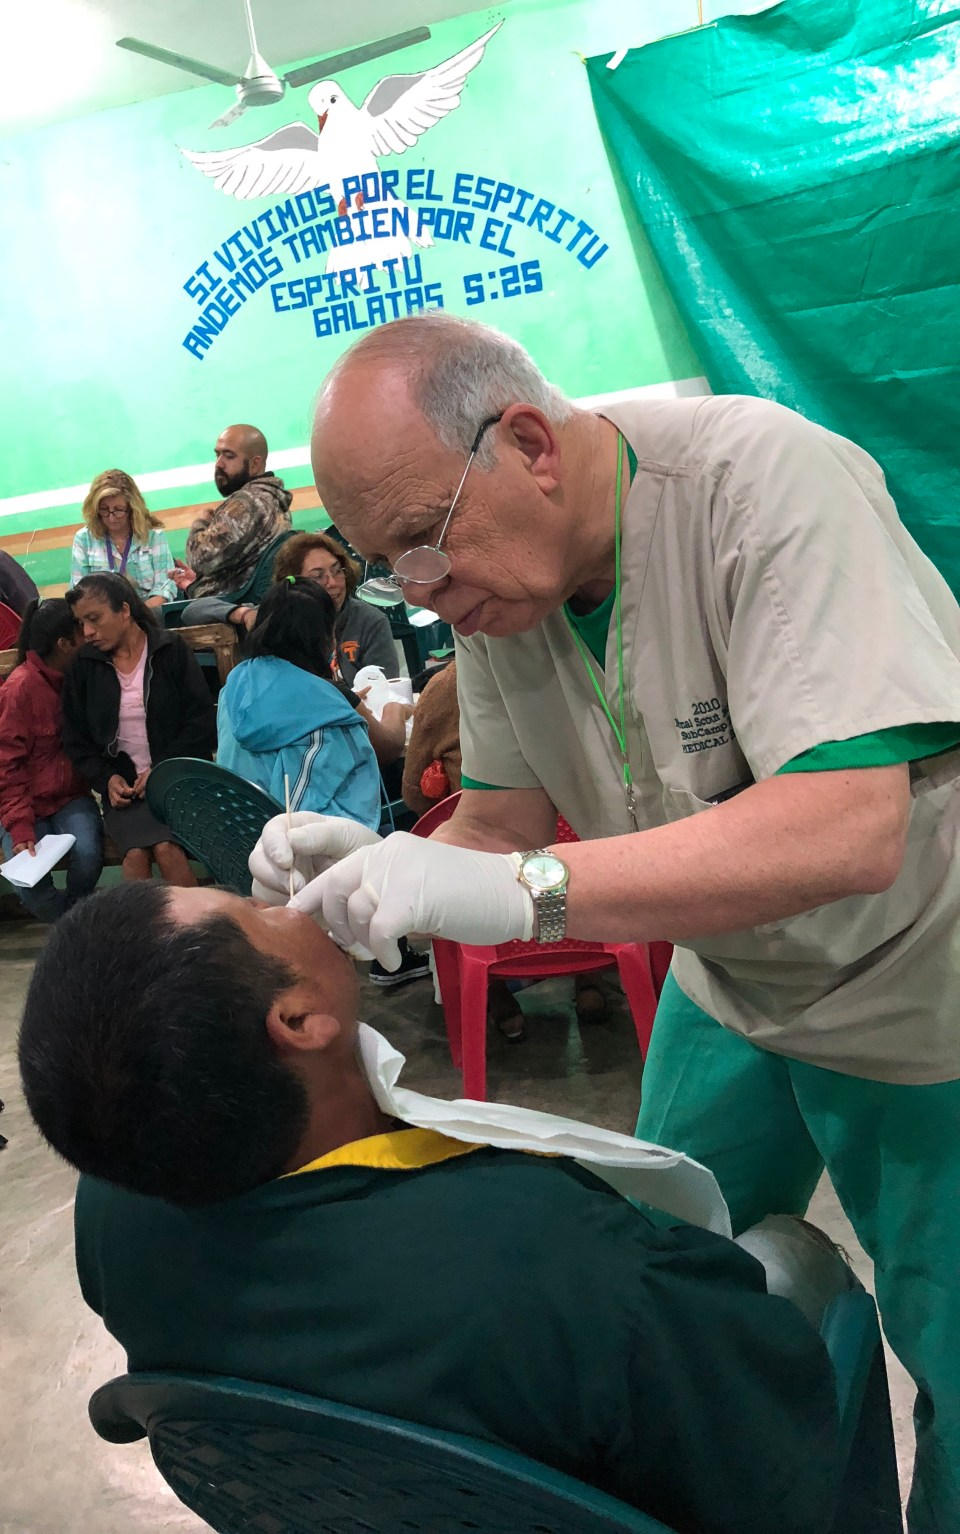 My personal physician, Paul Brown, Jr.,MD., has lead a mission team to Mexico for over thirty years.